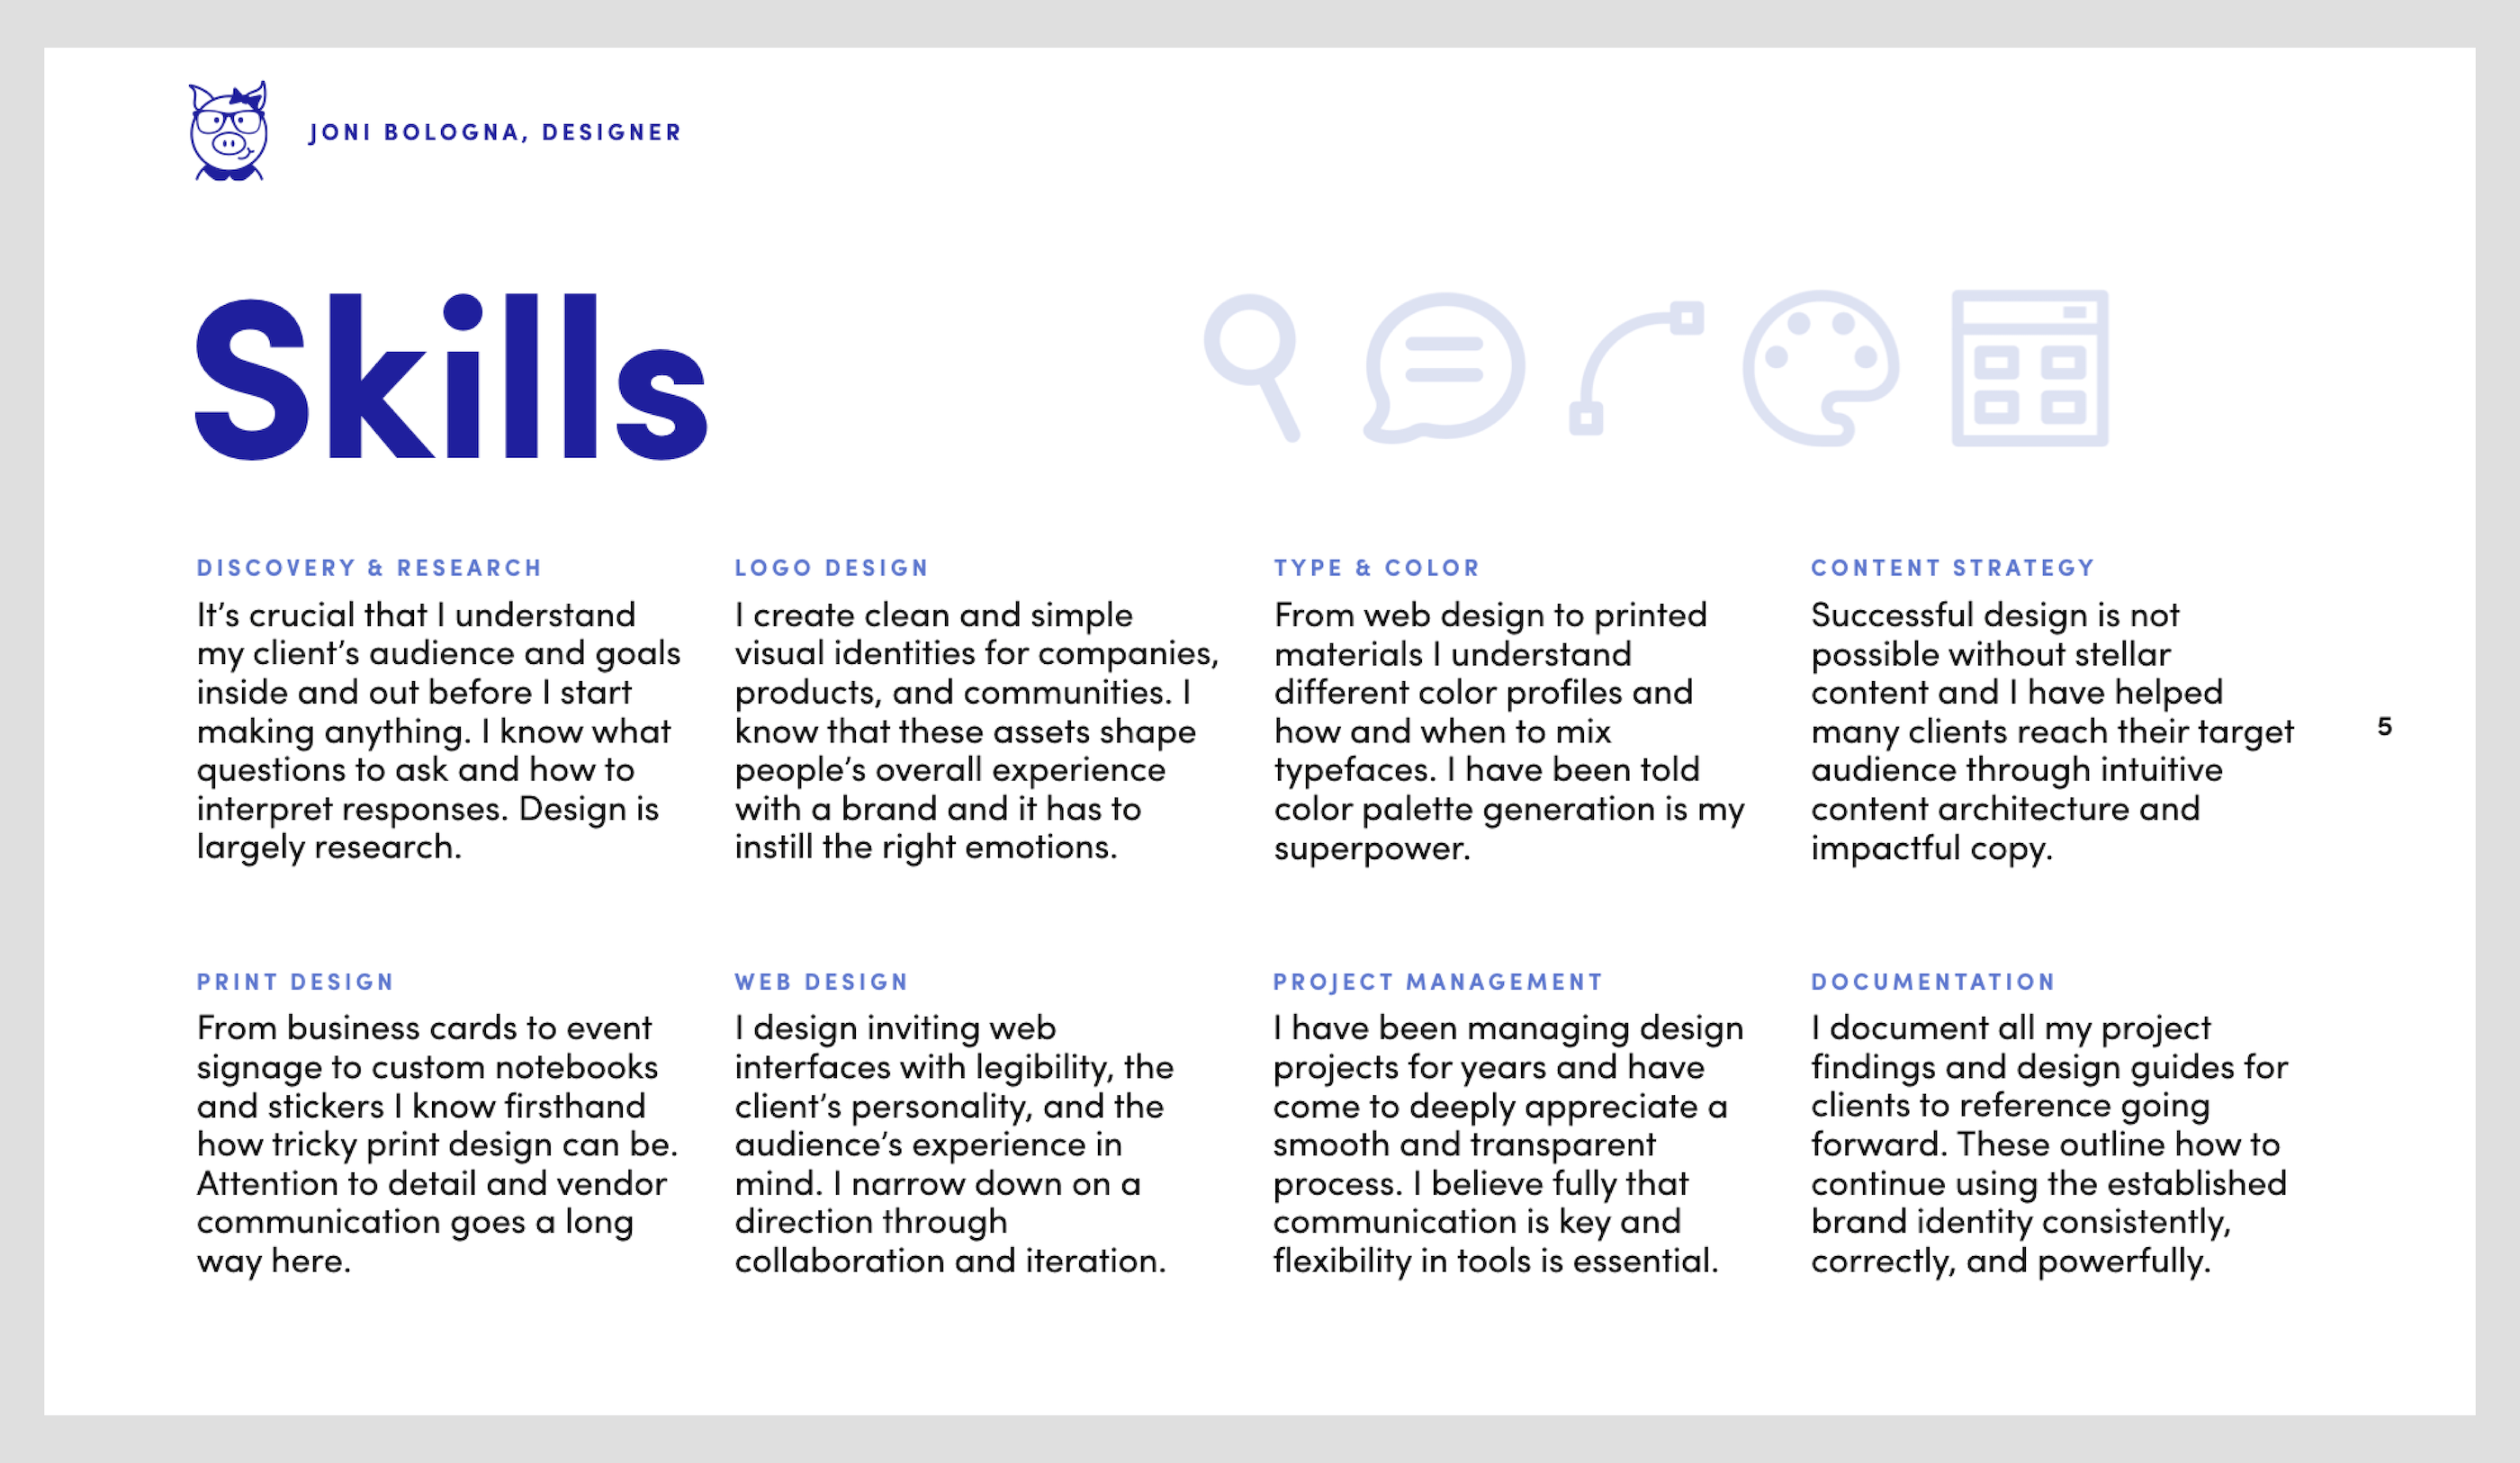 Preview of a list of design skills with brief descriptions, including web design, logo design, color selection, and more